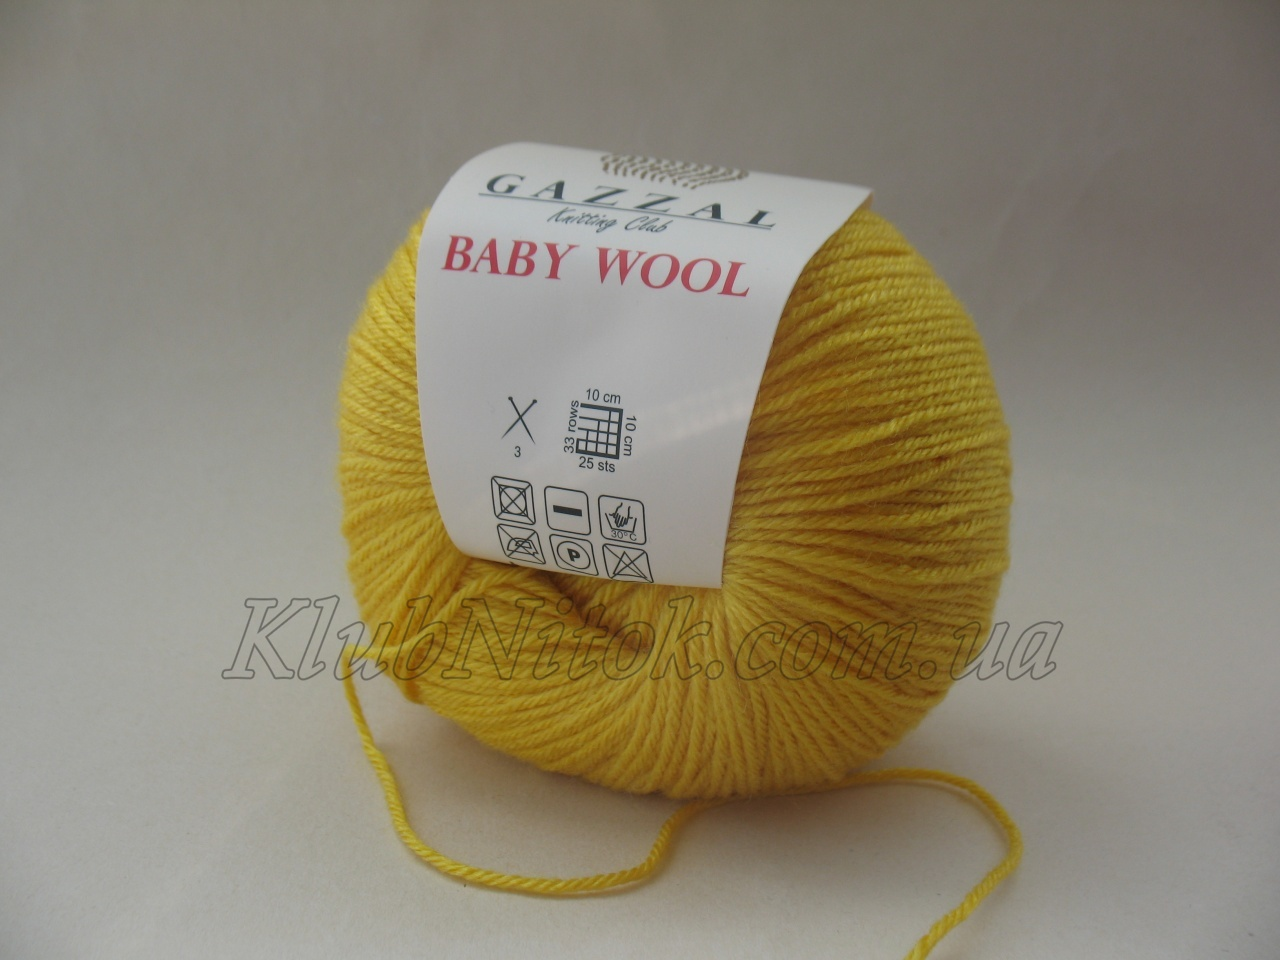 Baby wool 812